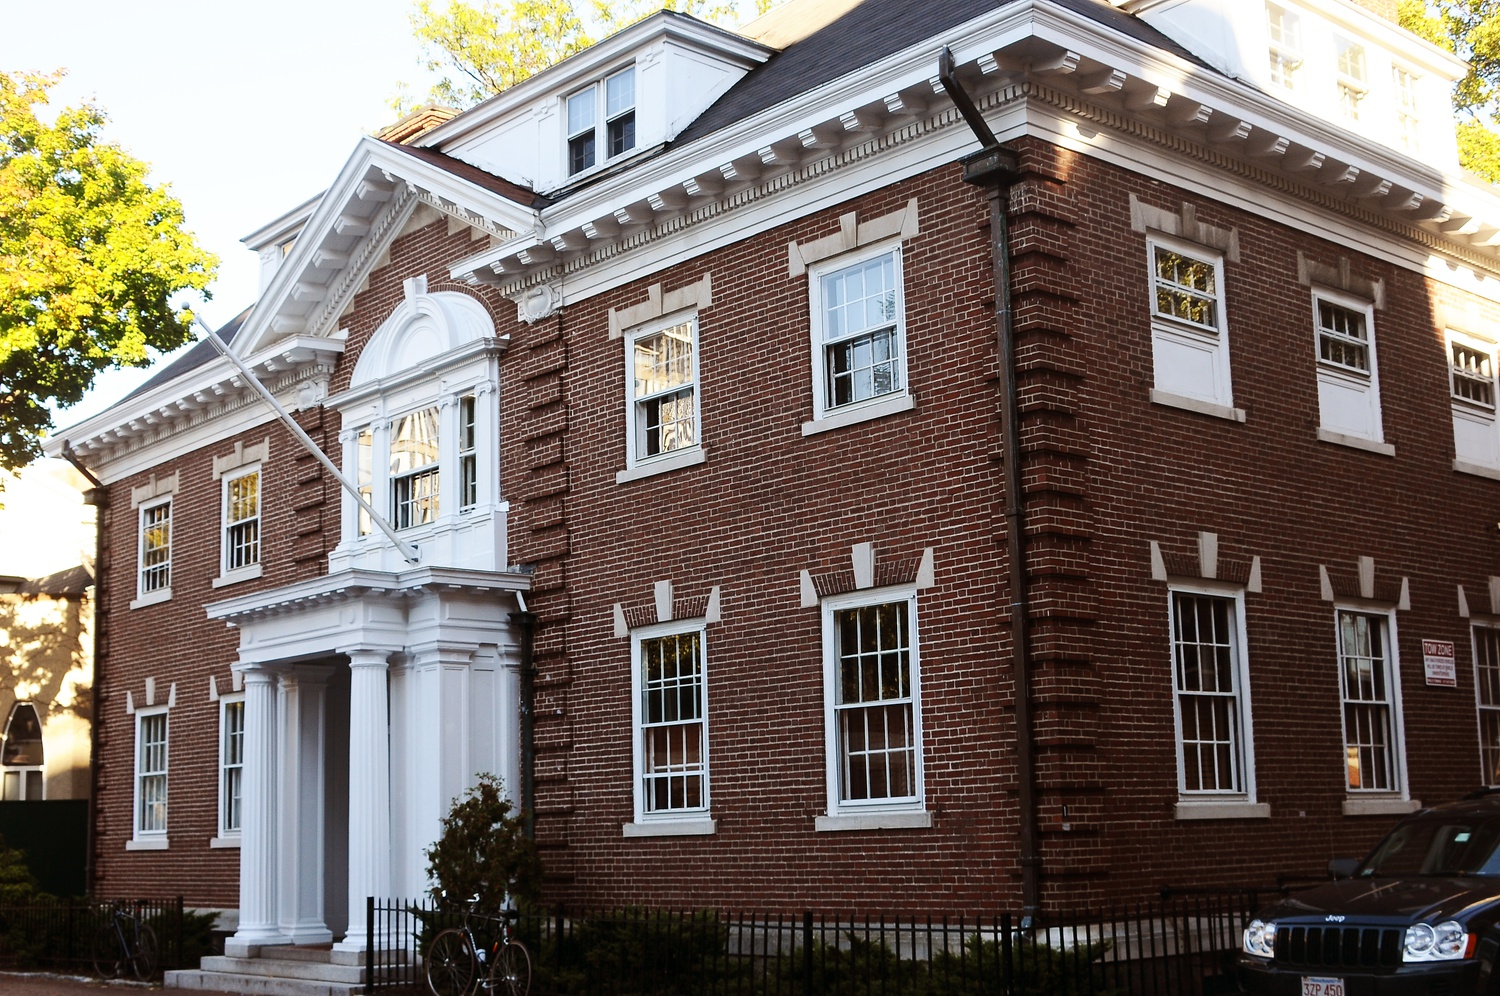 The Owl Club is one of Harvard's final clubs.